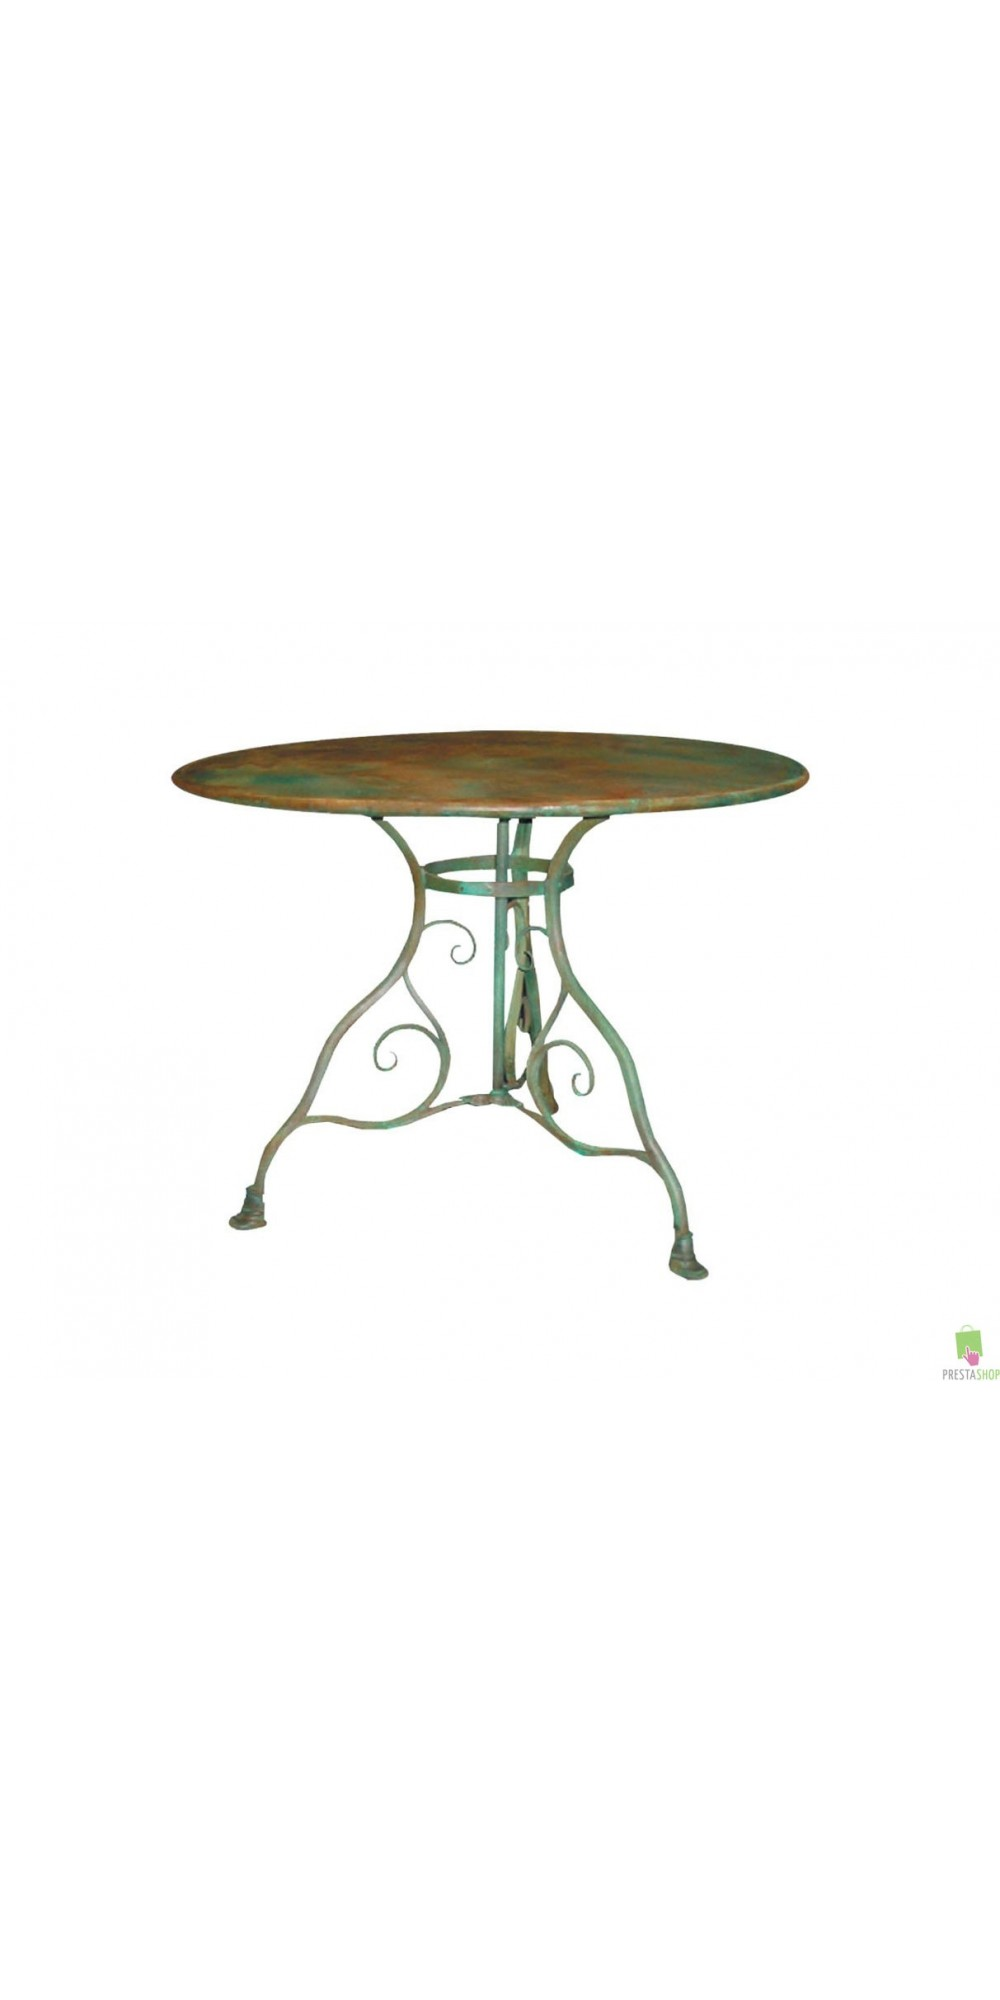 TABLE ARRAS